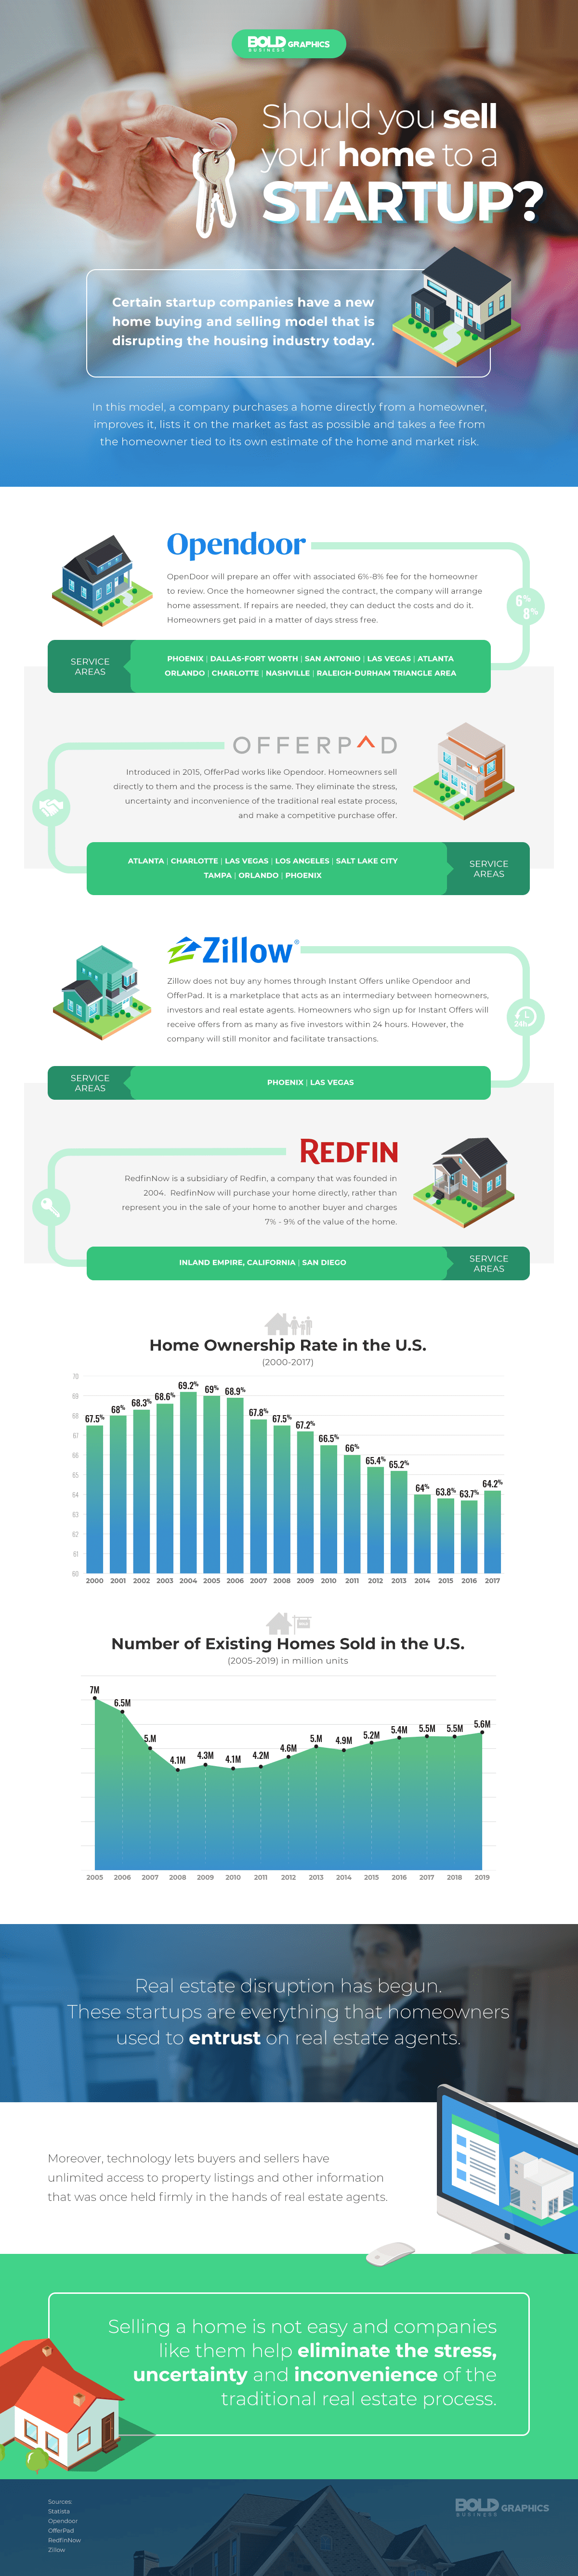 Would Your Let a Startup Buy Your Home Infographic